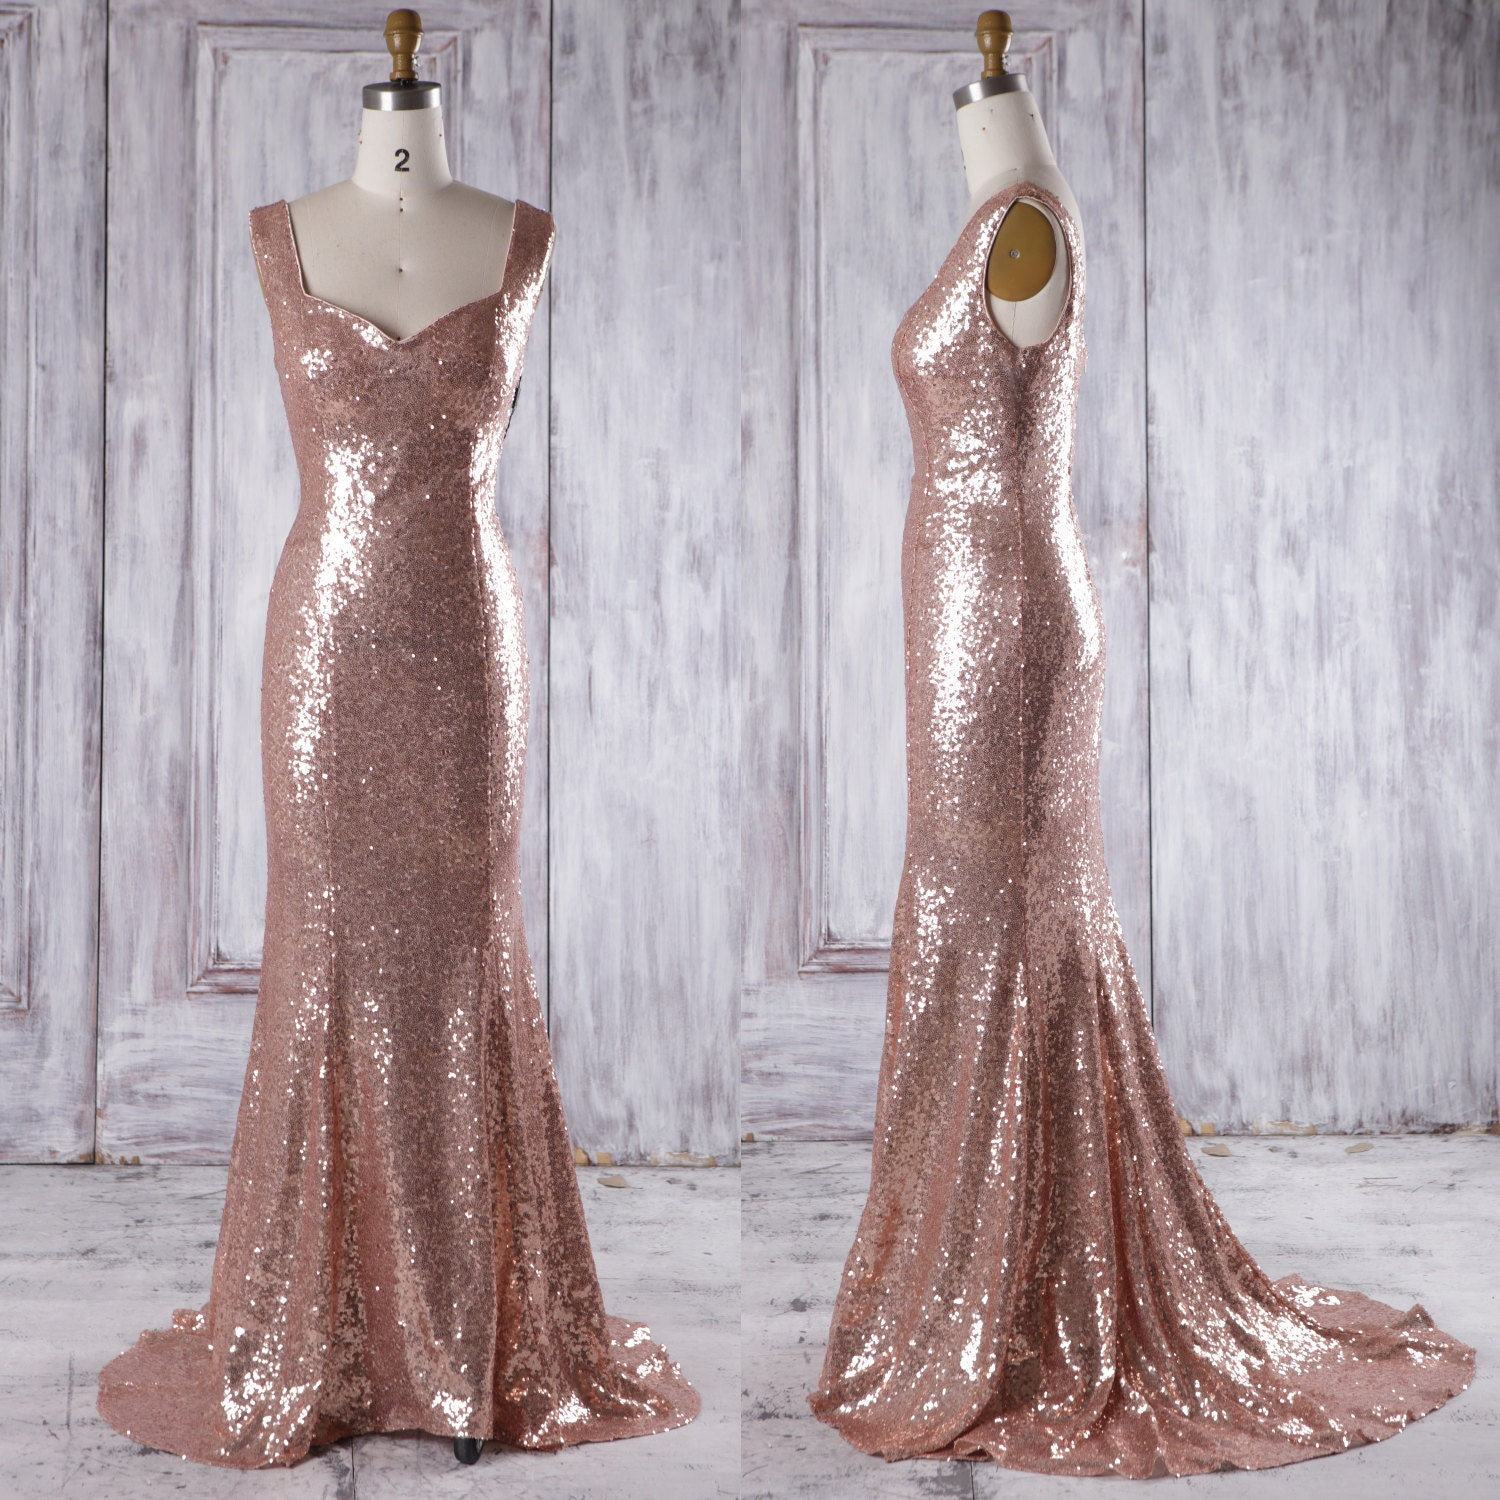 Gold Bridesmaid Dresses: 2017 Rose Gold Bridesmaid Dress With Train Luxury Evening